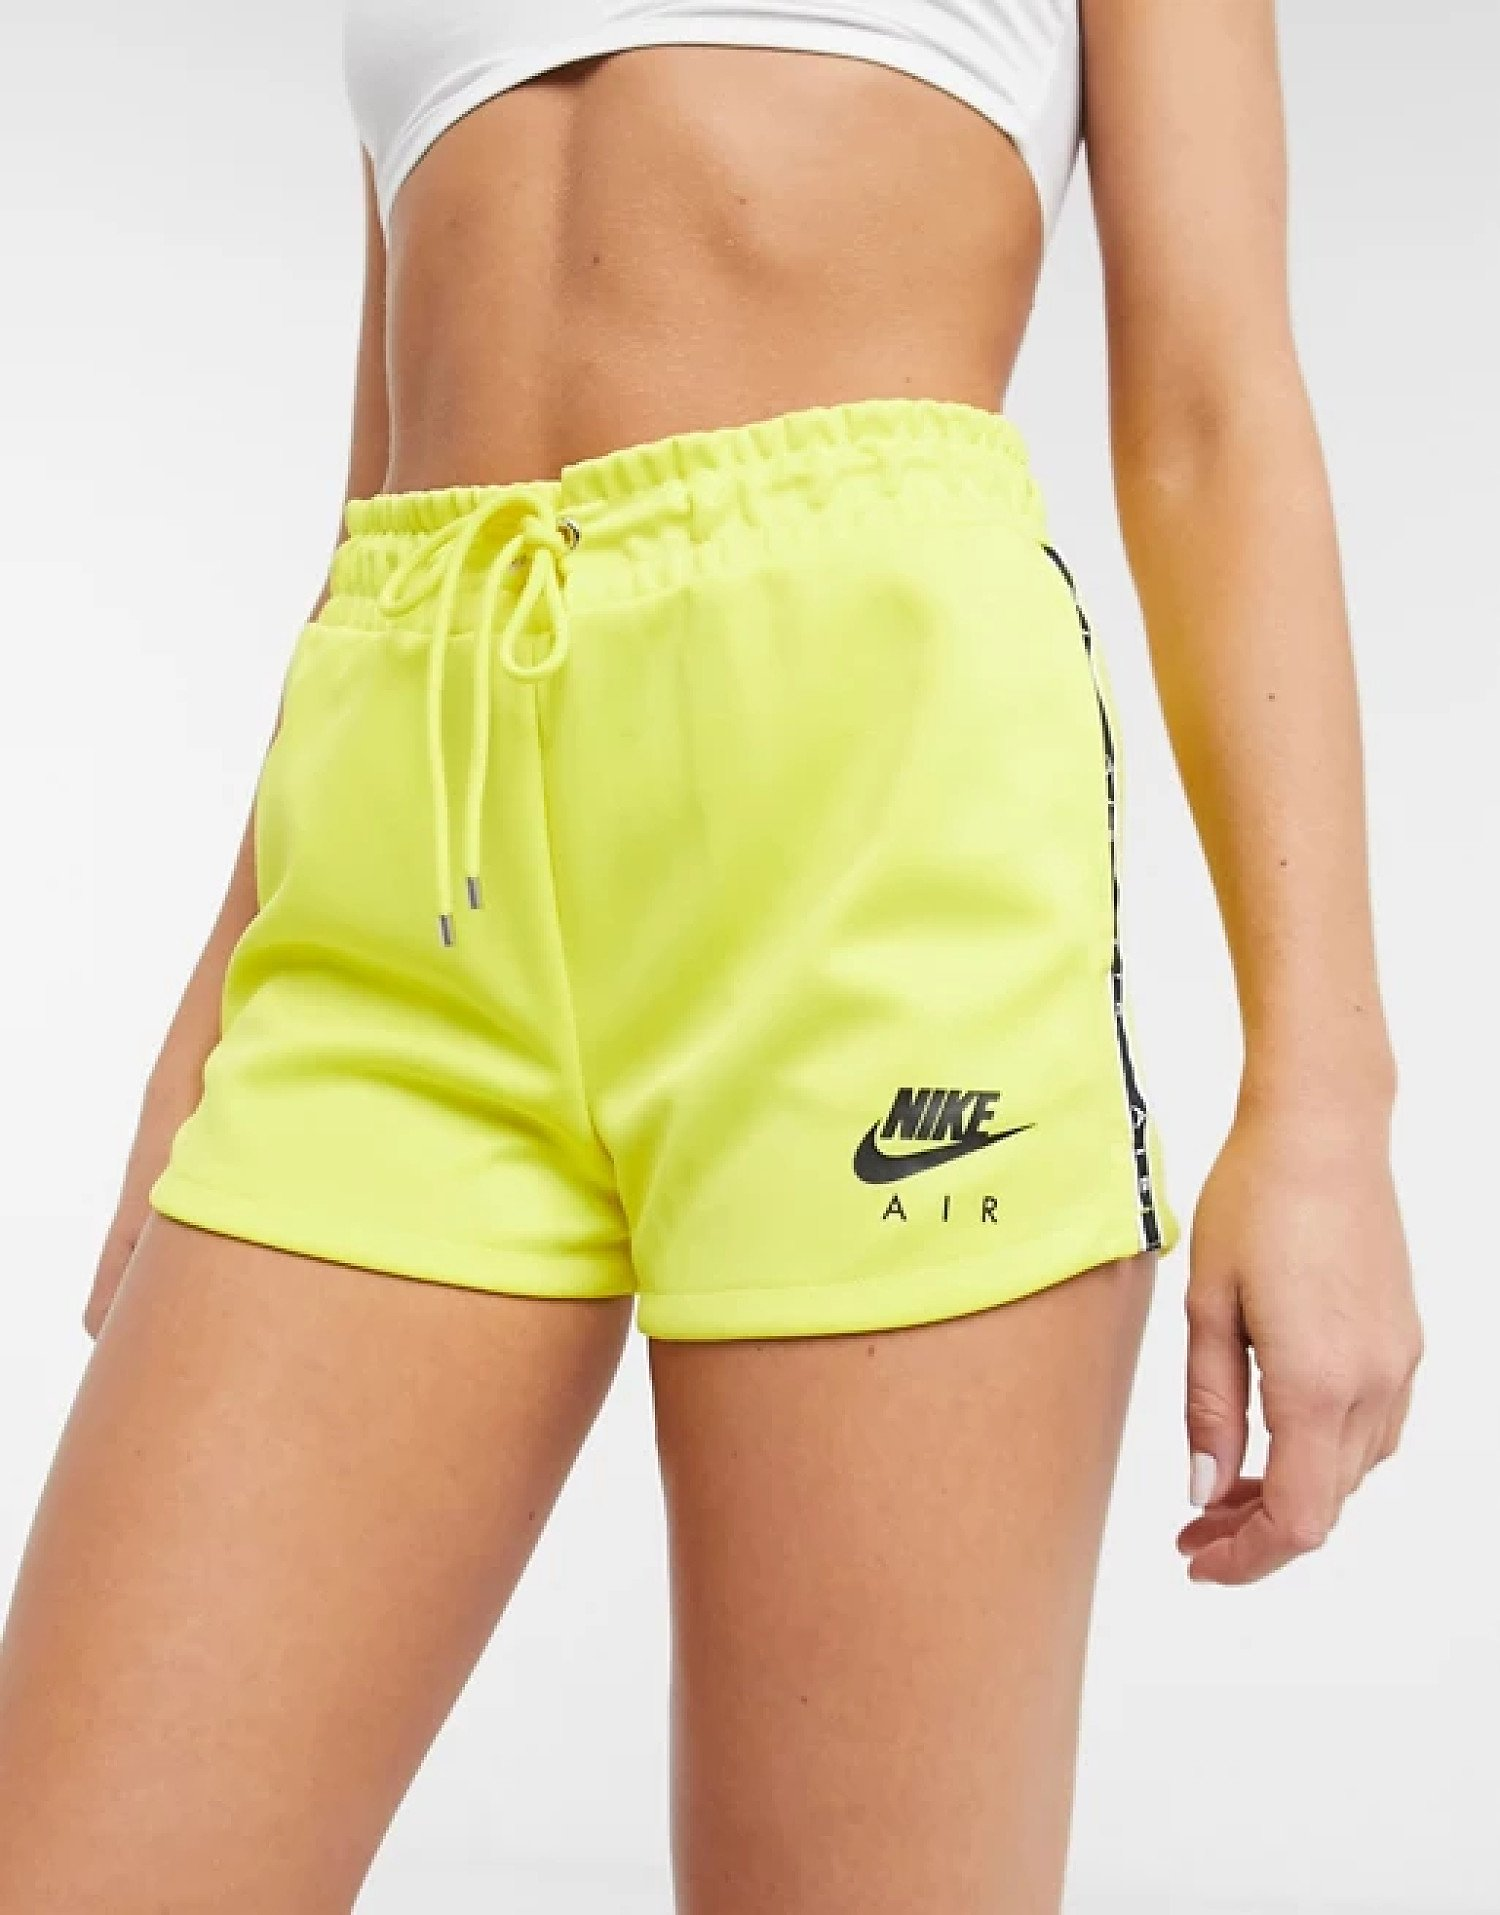 SALE - Nike air logo tape shorts in yellow!